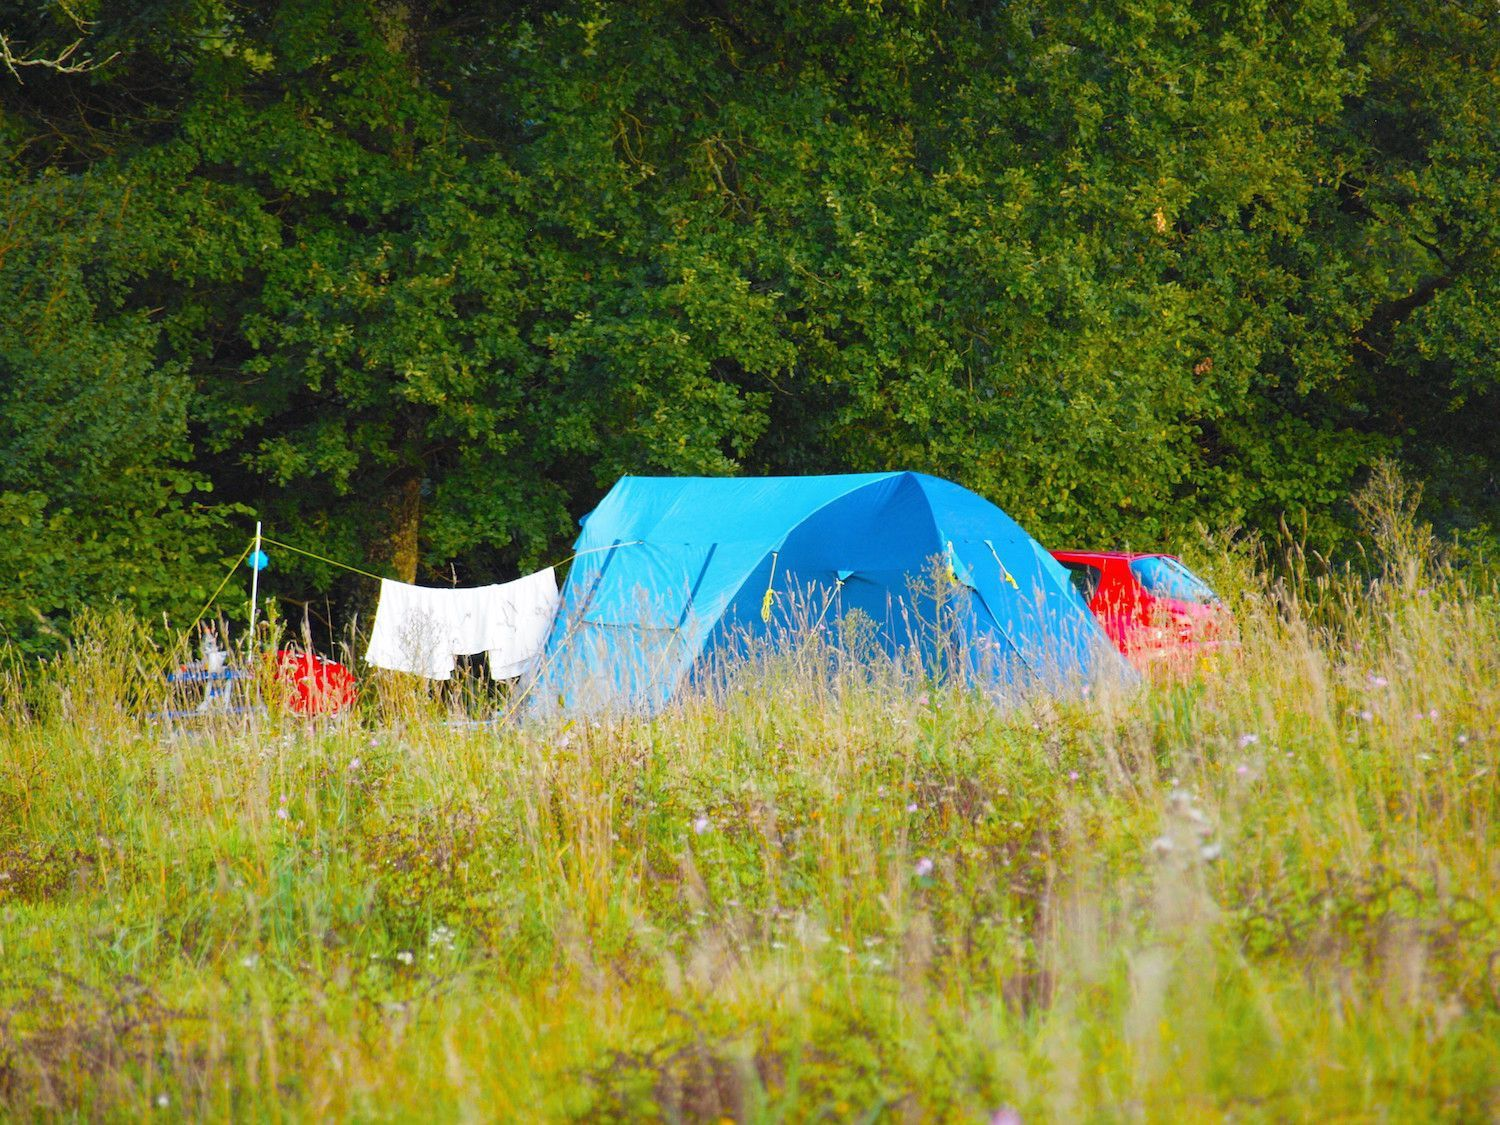 Campsites Near Me | Campsite, Camping world, Camping park